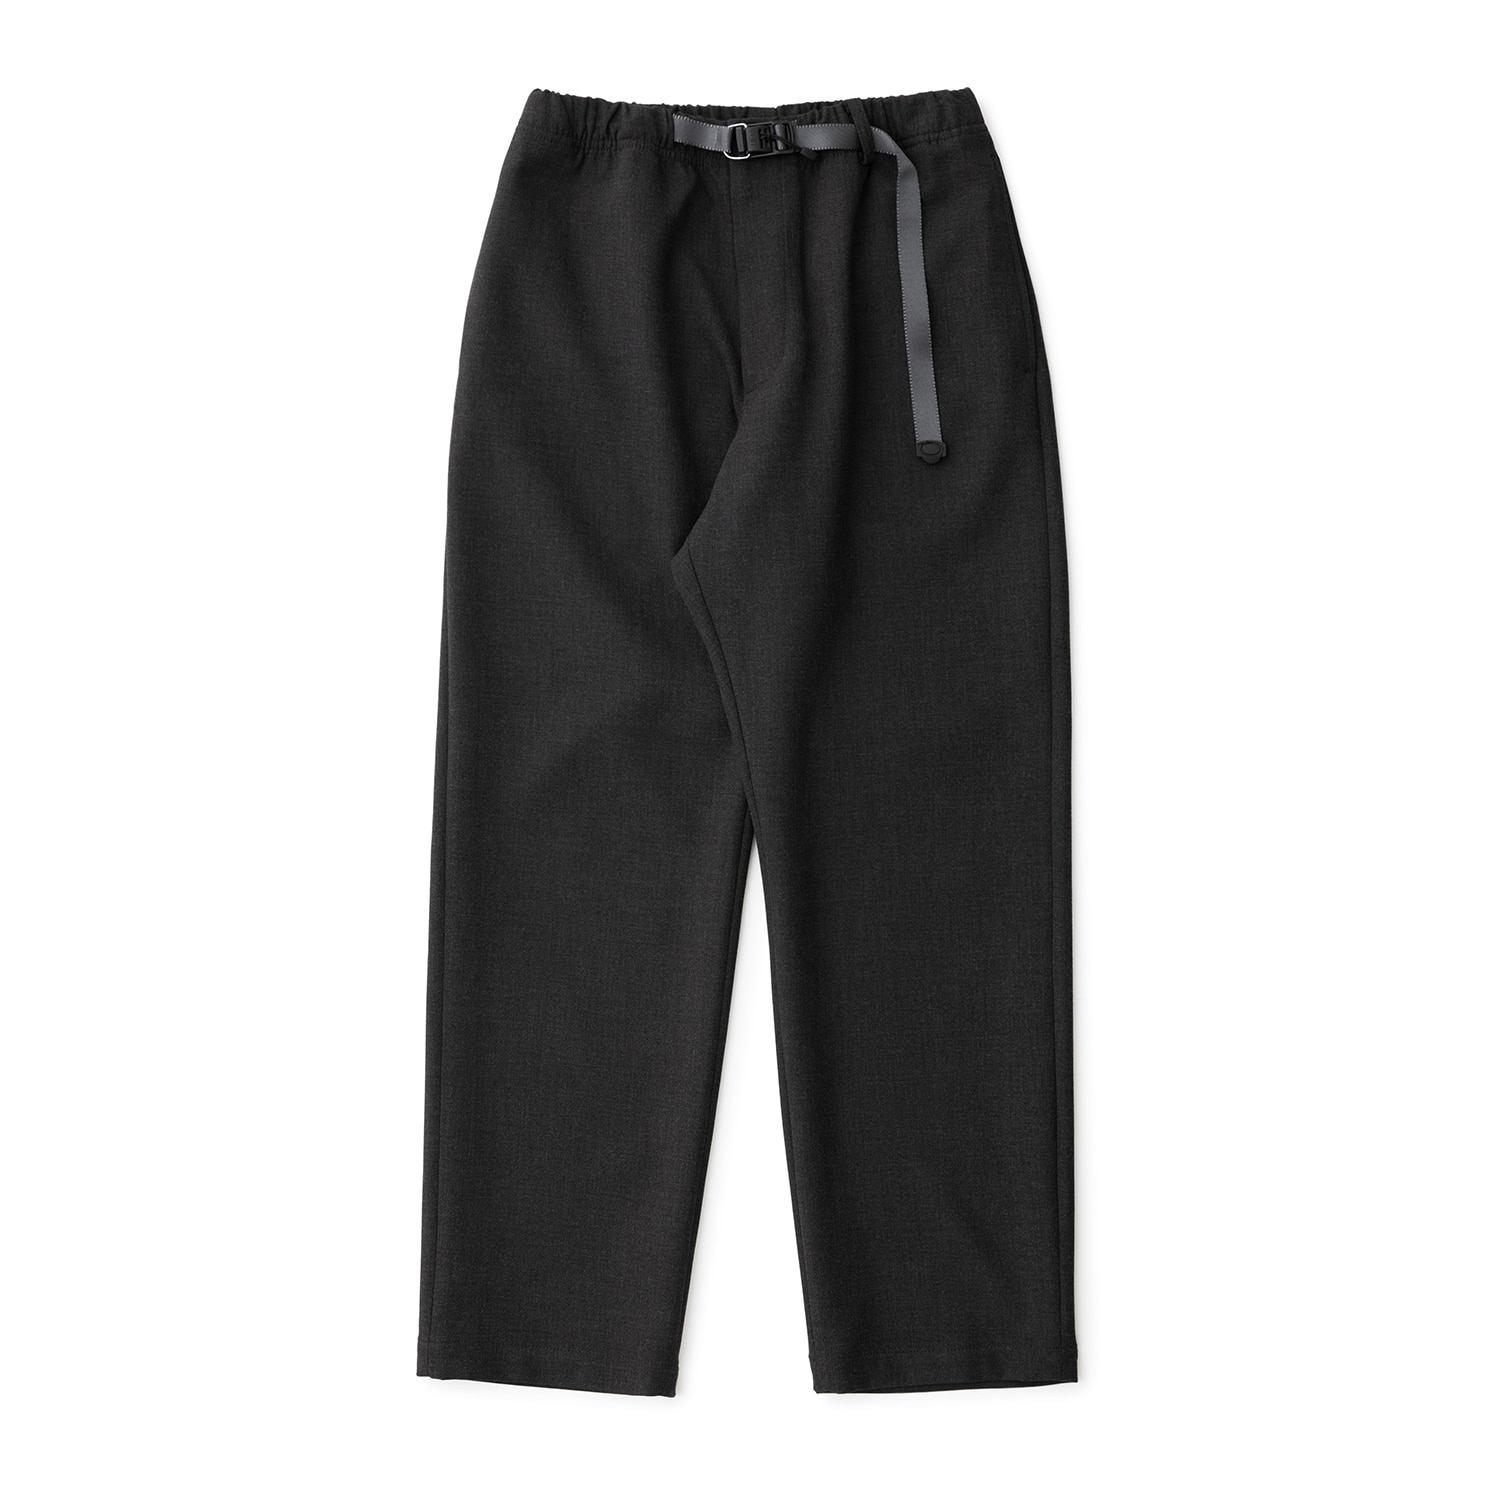 Ample Stroller FIDLOCK Pants (Charcoal)